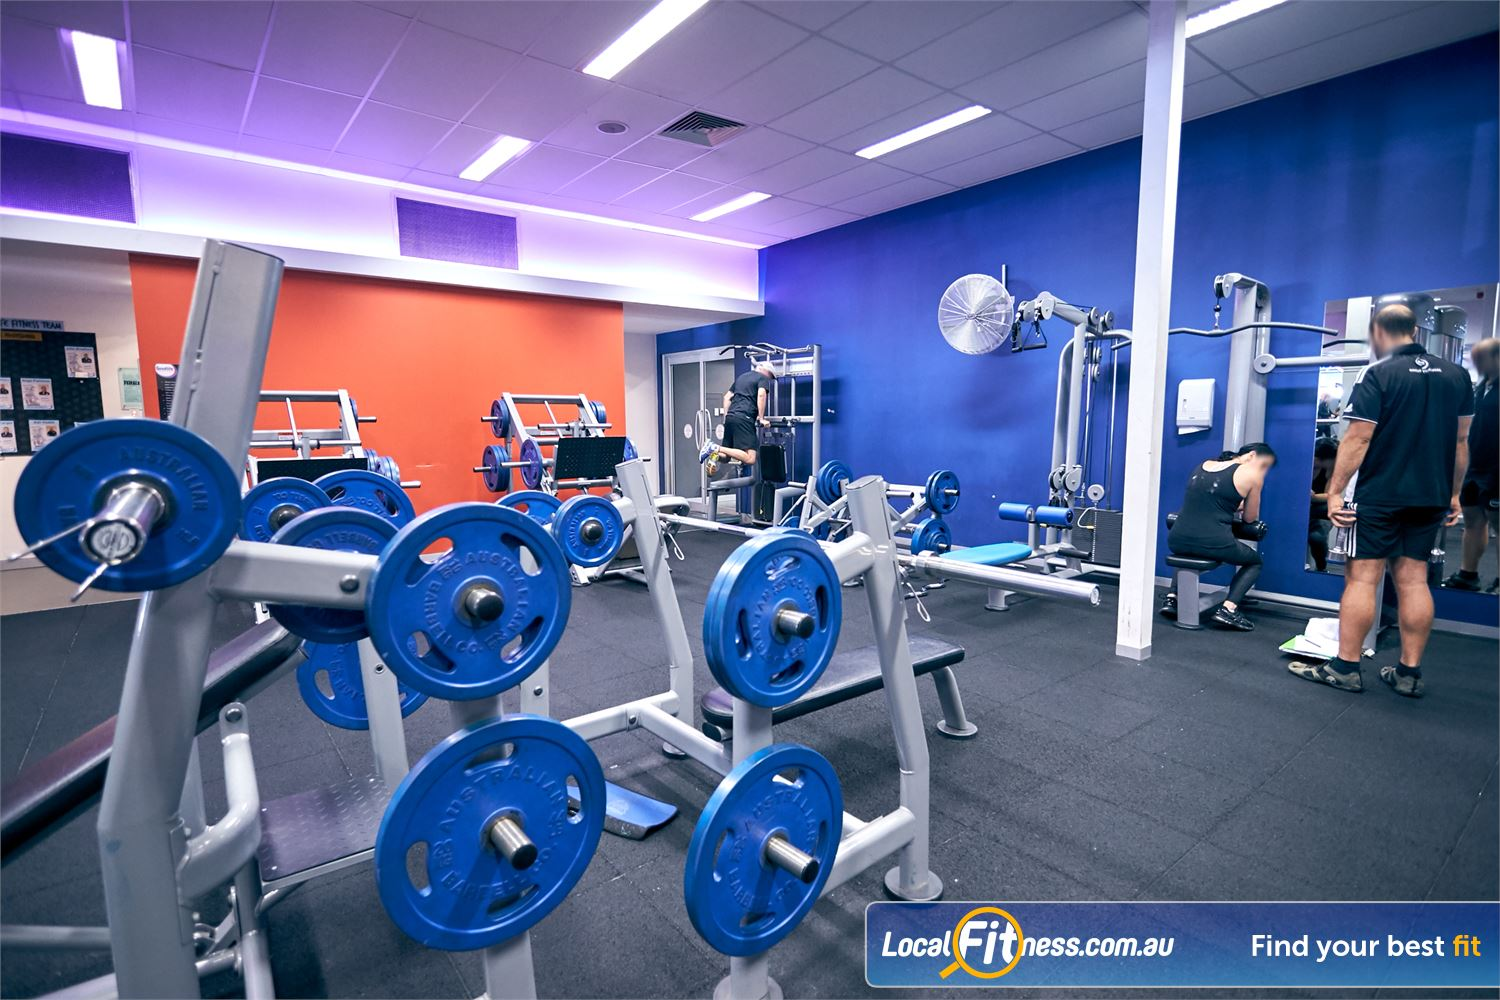 Goodlife Health Clubs Cross Roads Westbourne Park Our 24 hour Cross Roads gym includes a fully equipped free-weights area.